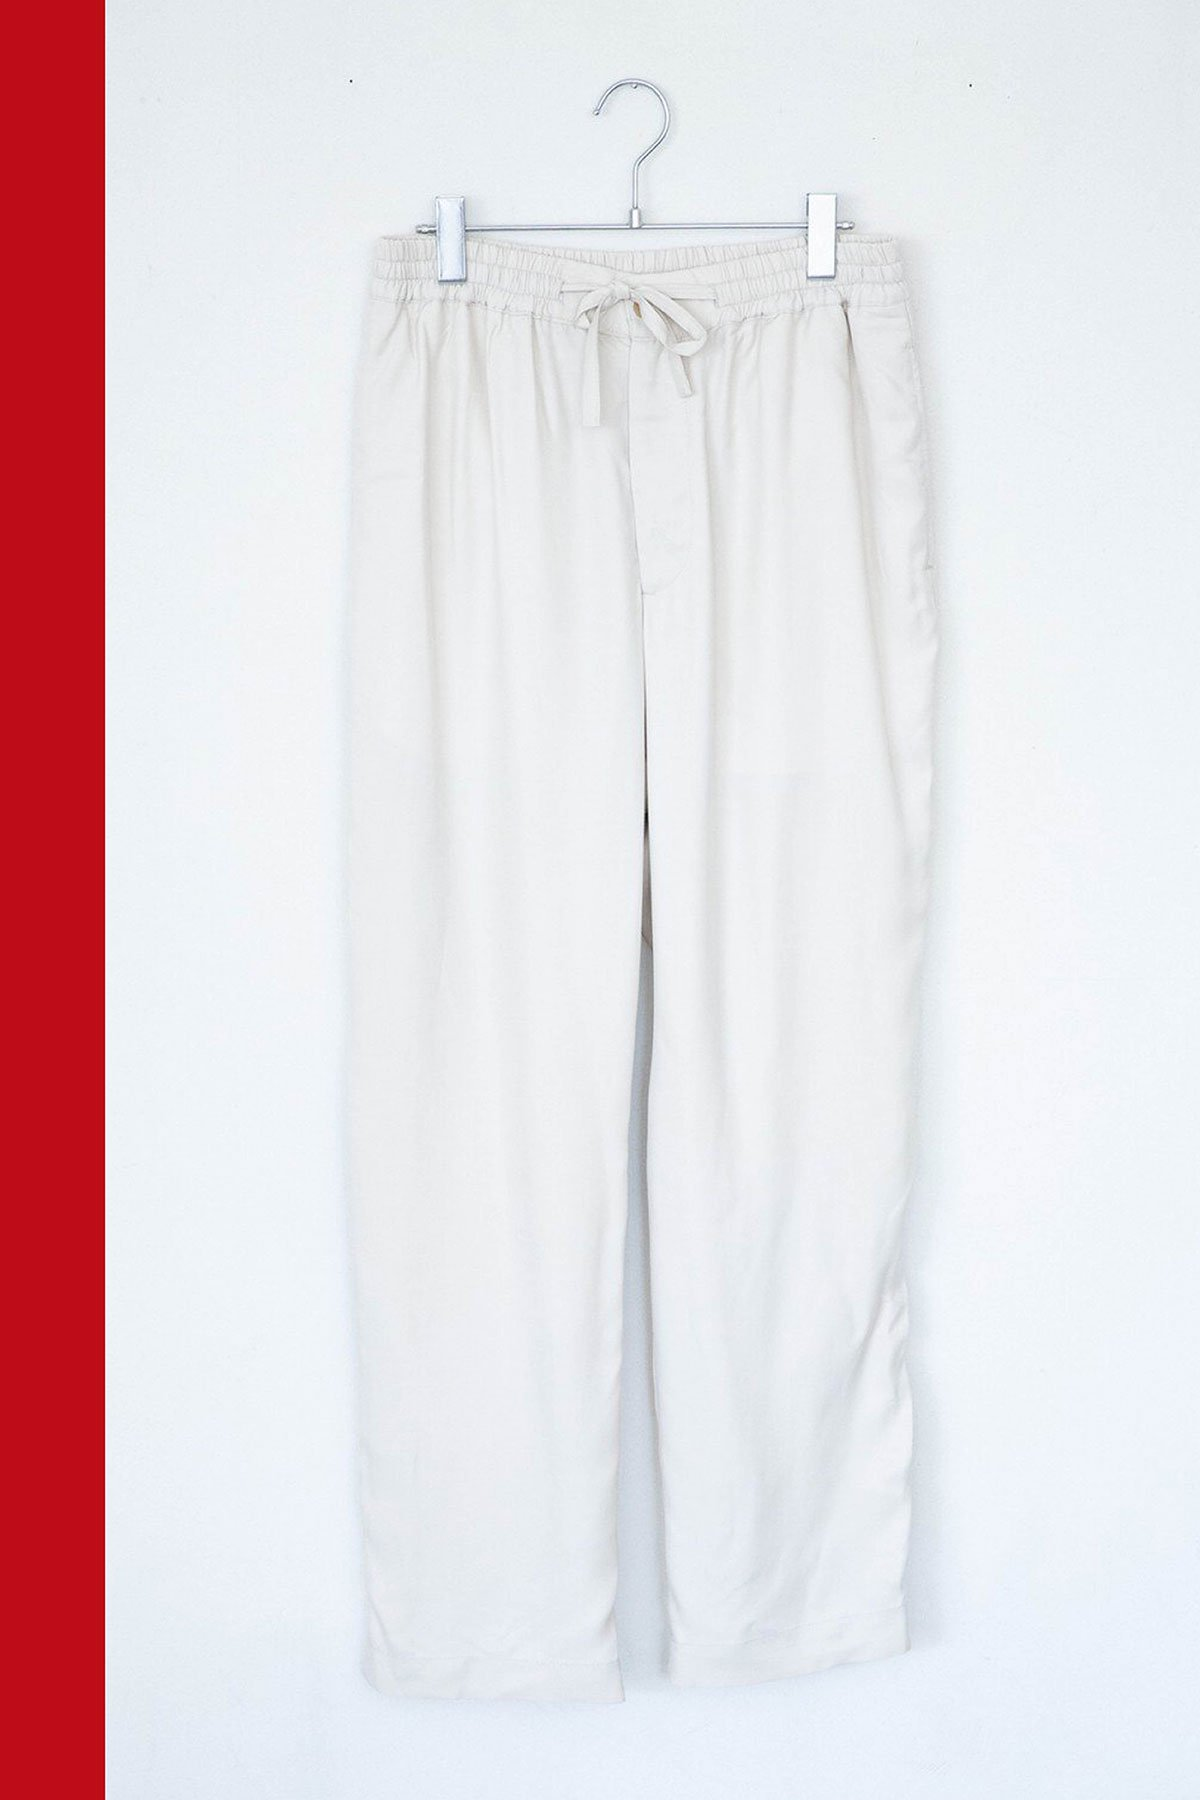 whowhat / WING PANTS